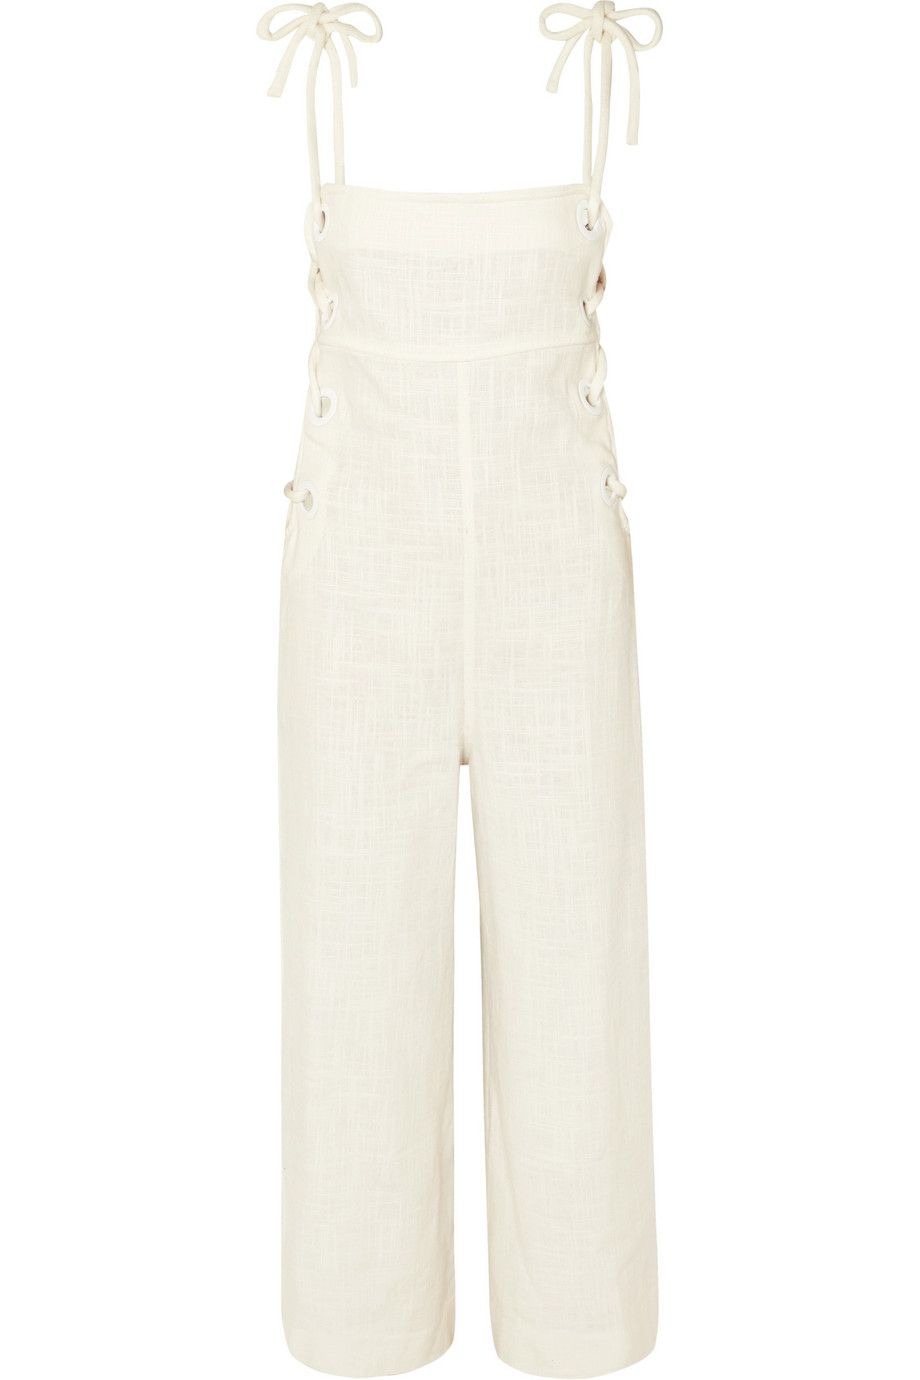 988cd6170e Staud Ivory linen-blend Concealed zip at back and ties at shoulders ...